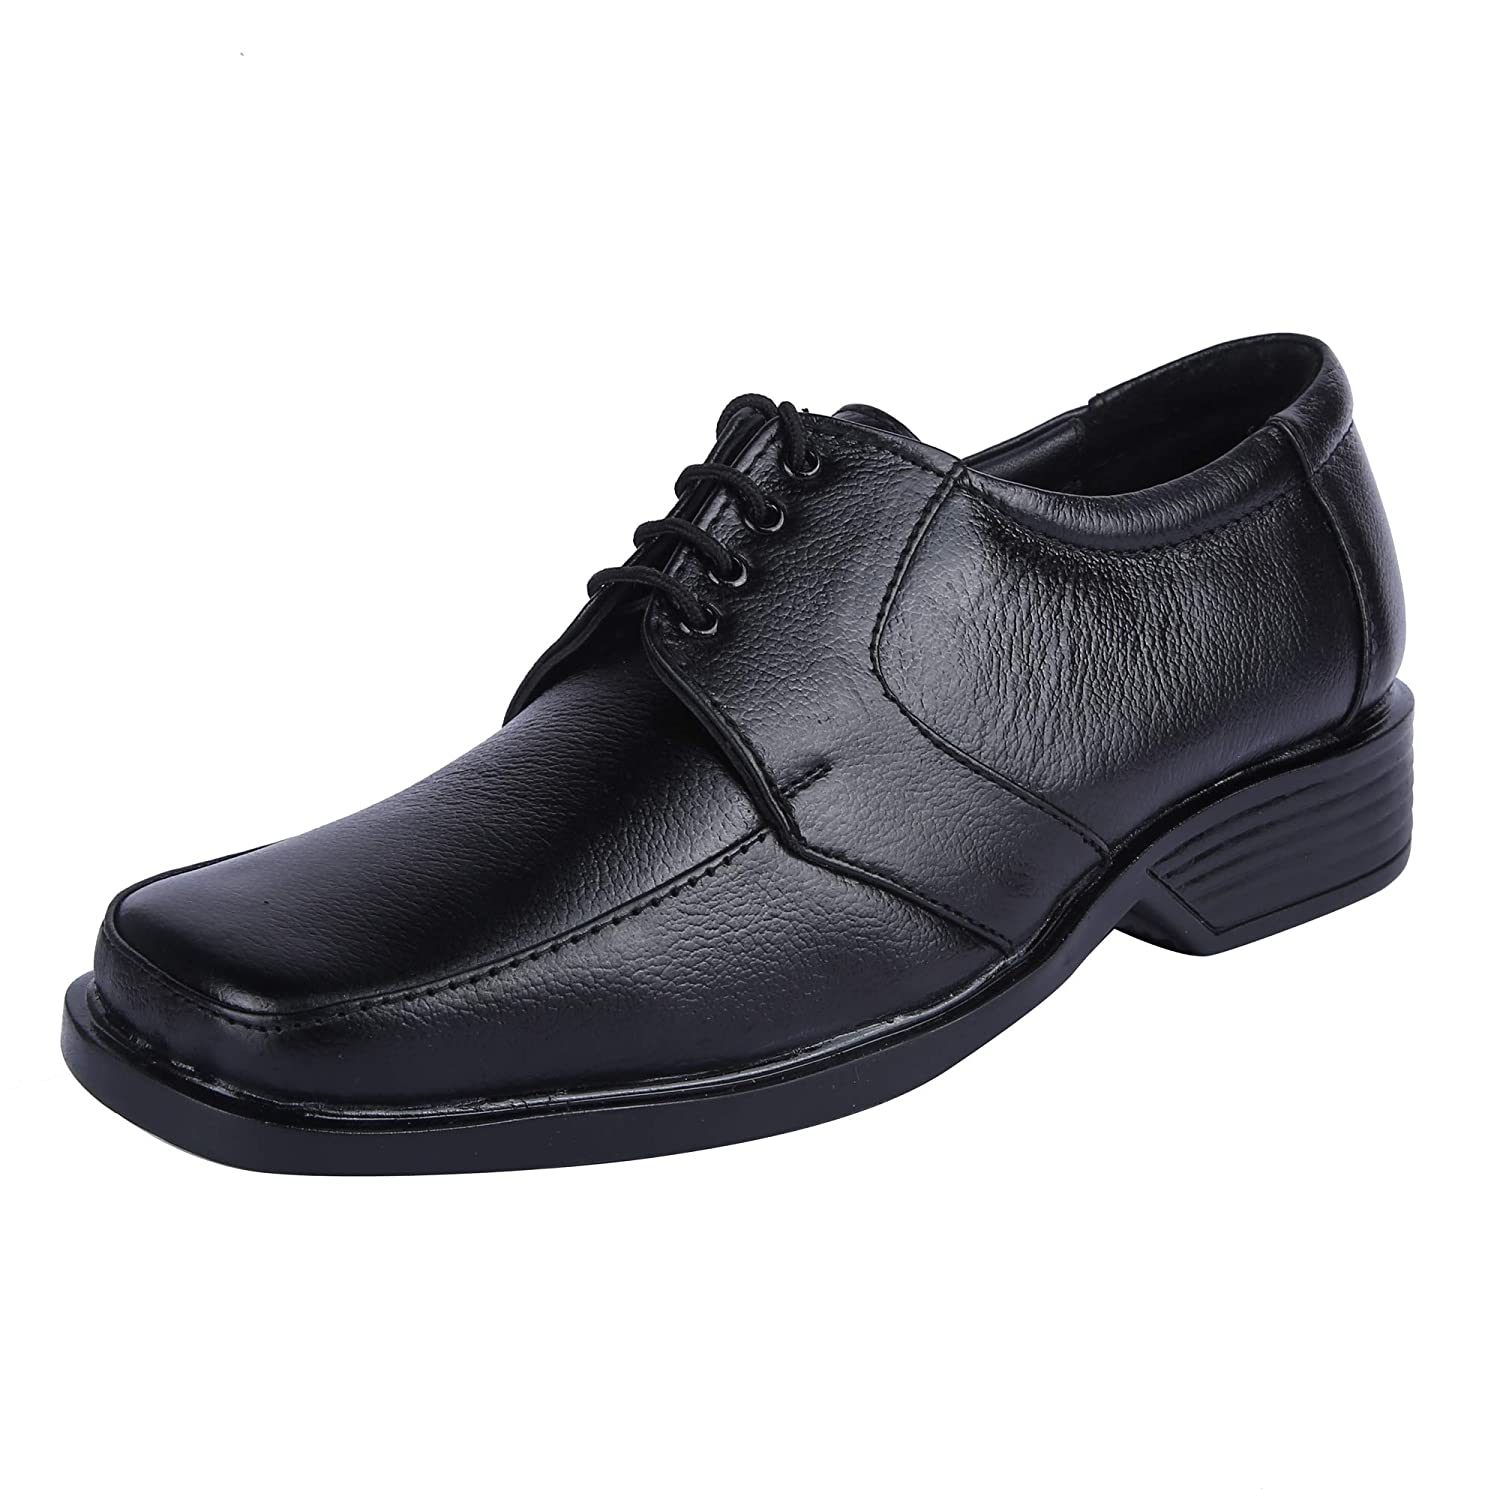 Buy Broad Shoes for Mens Formal   The